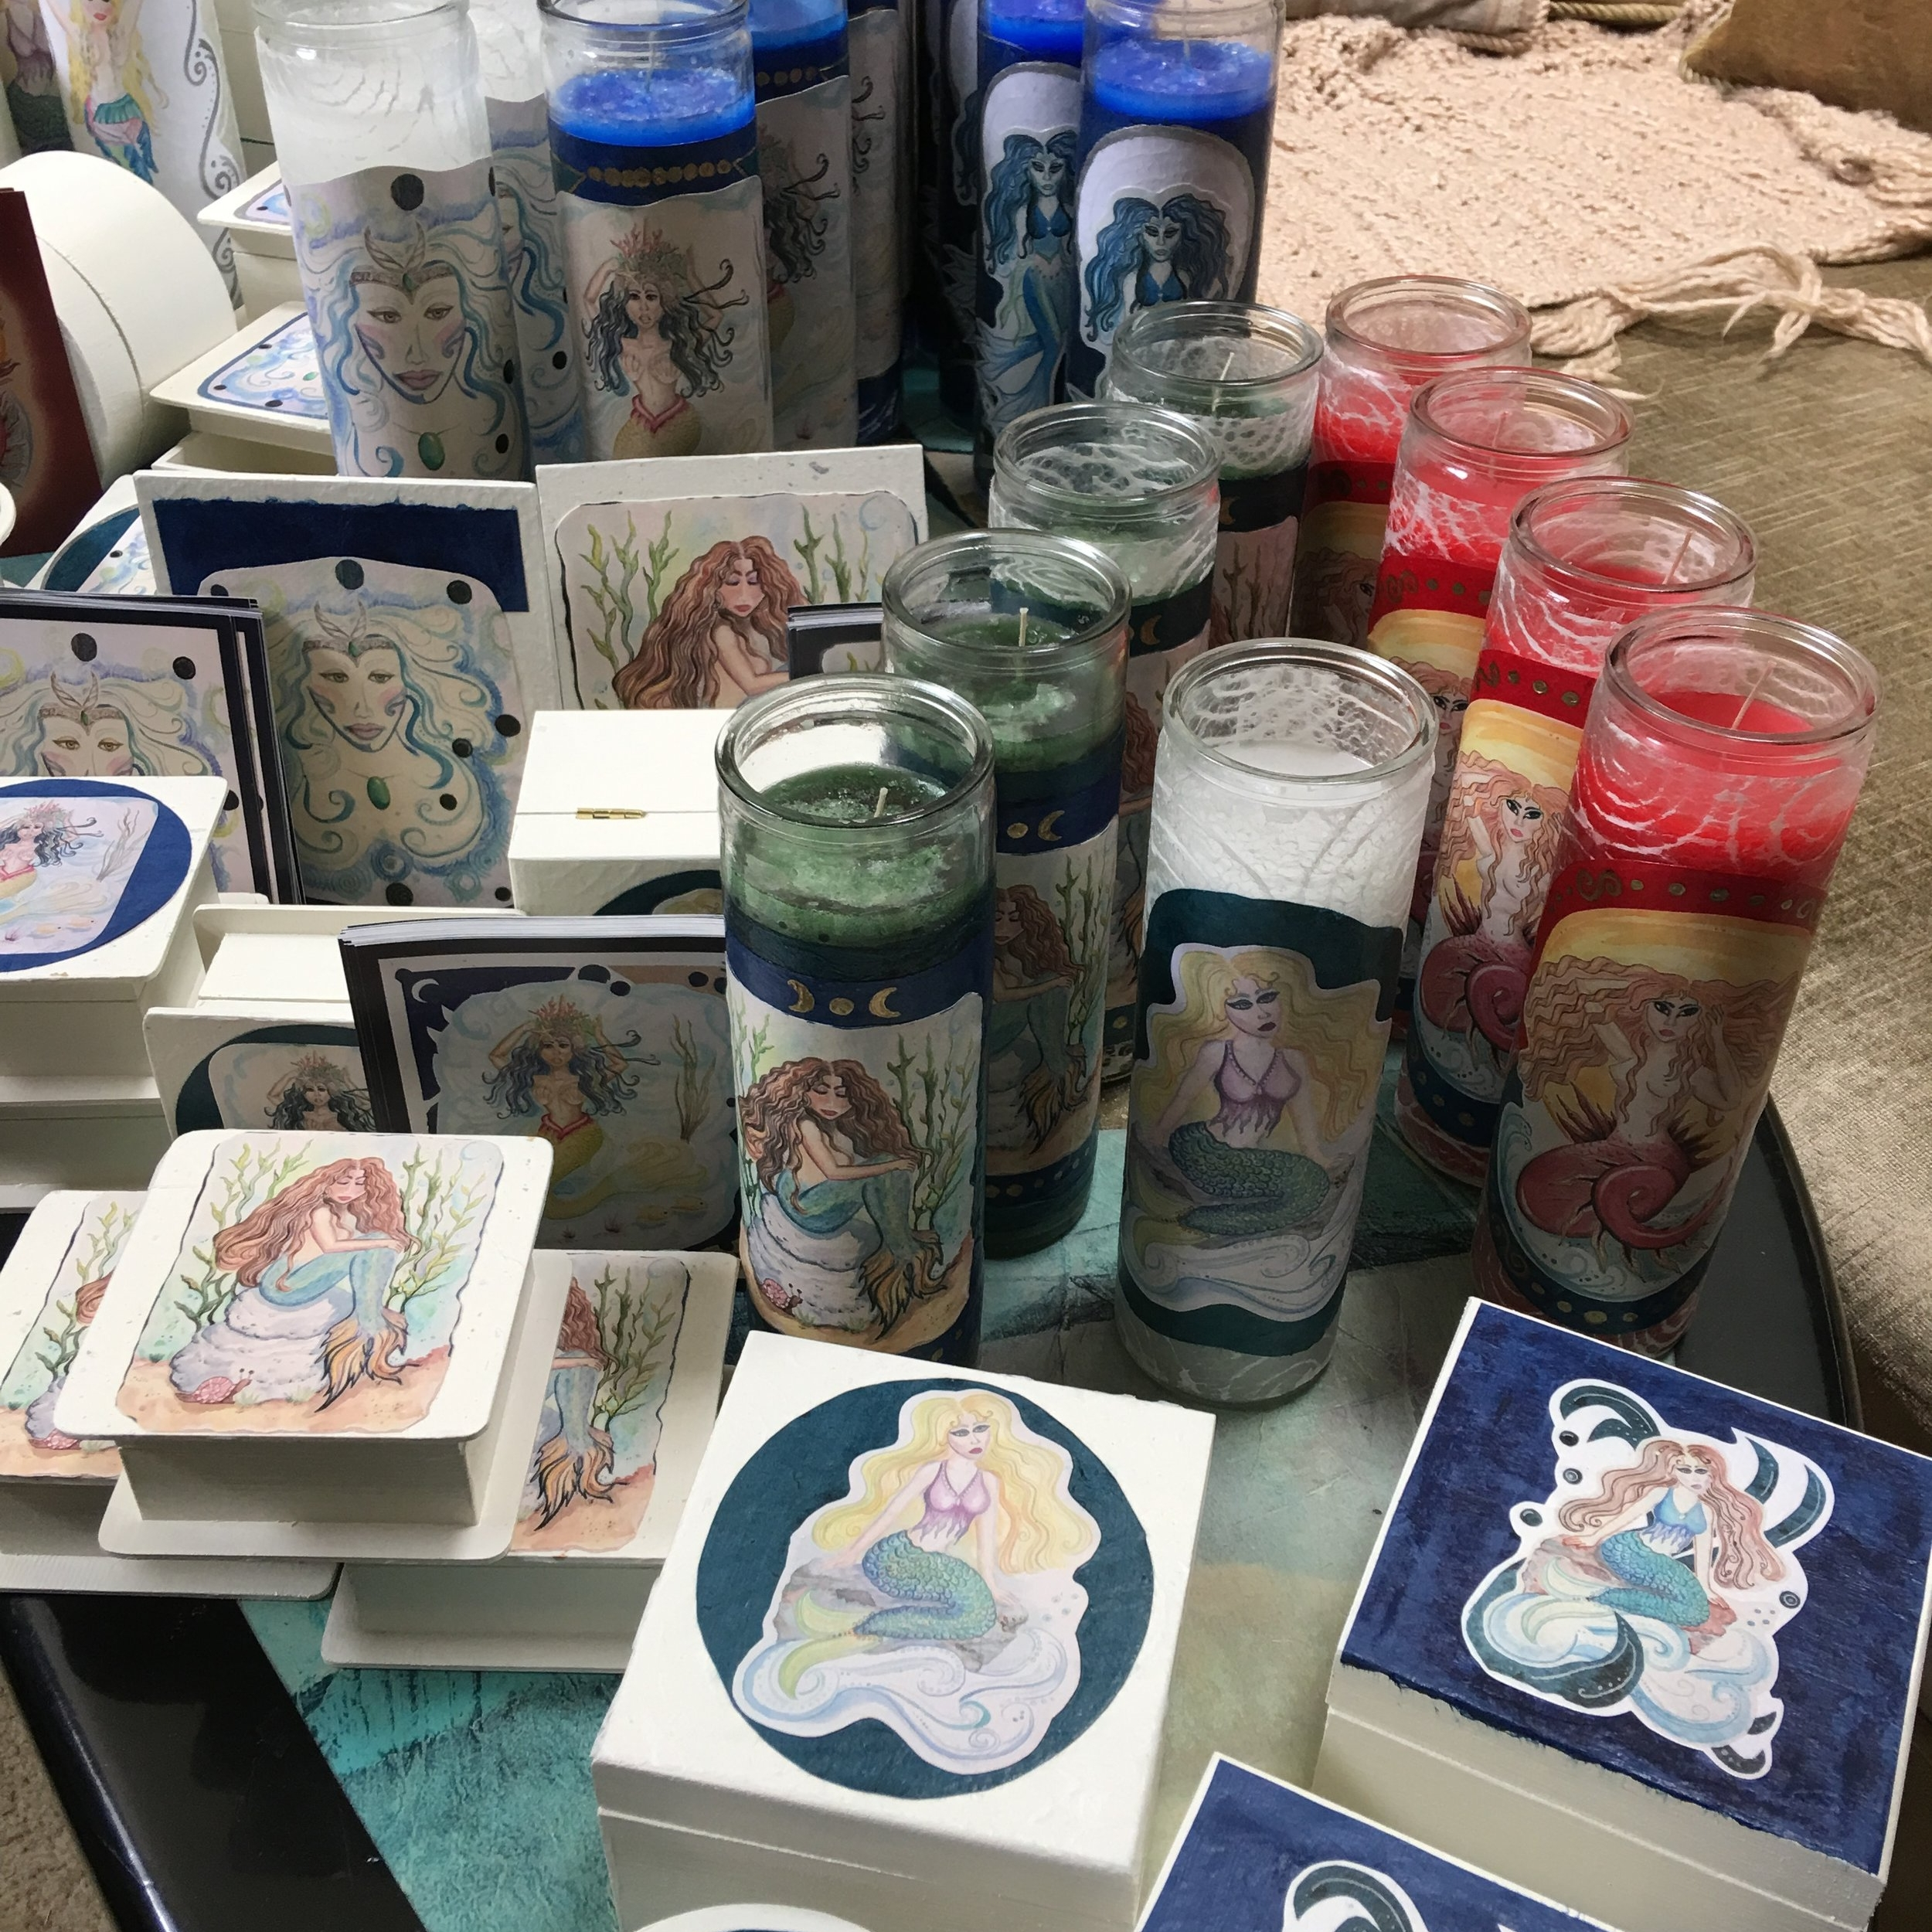 Sharon Knight - Drawing on imagery from fairytale and folklore, Sharon Knight creates whimsical fantasy mermaids using water colors, colored pencils and pens, decoupage, and decorative papers.HEXENFEST SPONSOR